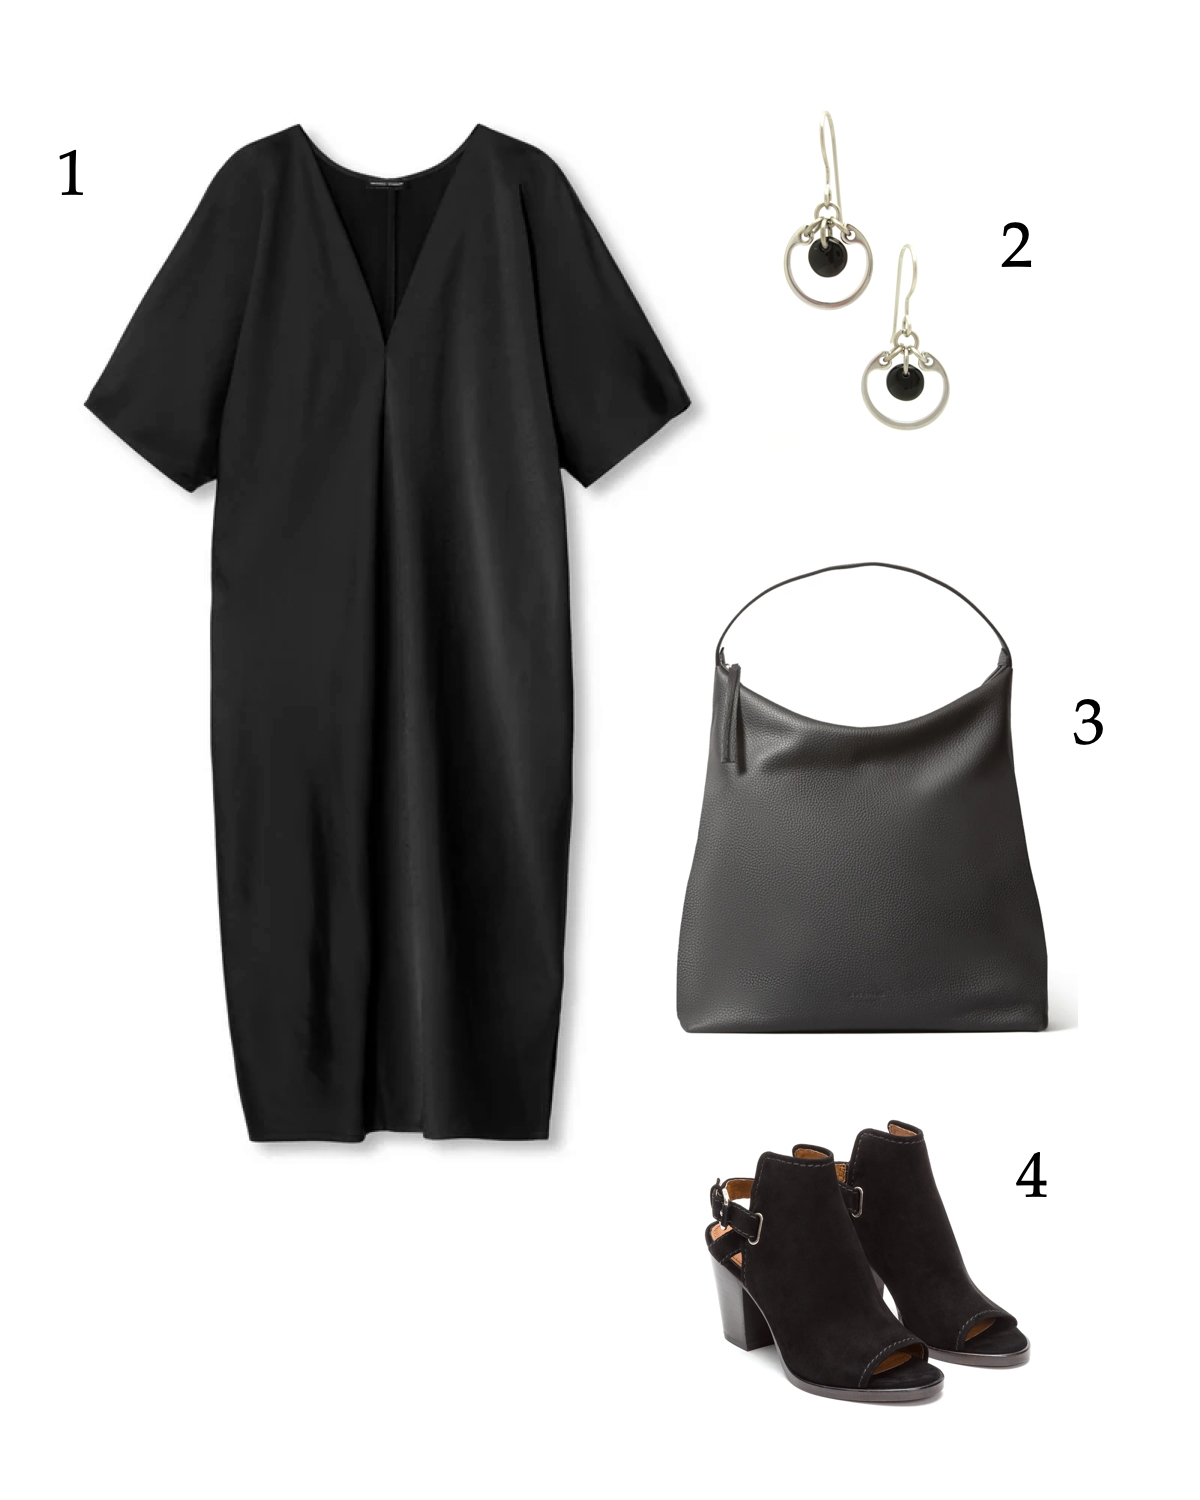 all-black outfit inspiration for summer that's classic but cool, with an easy summer dress, simple earrings, and classic accessories